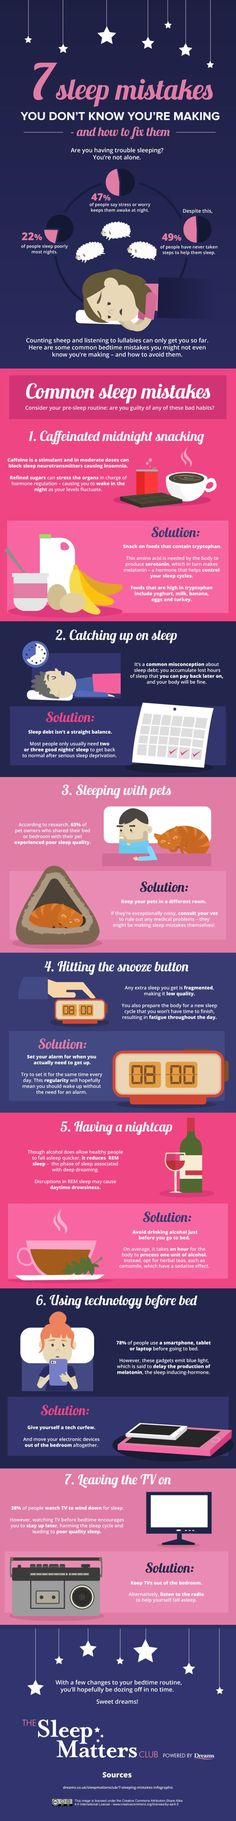 Sleep Mistakes You Don't Know You're Making (Infographic) - mindbodygreen.com